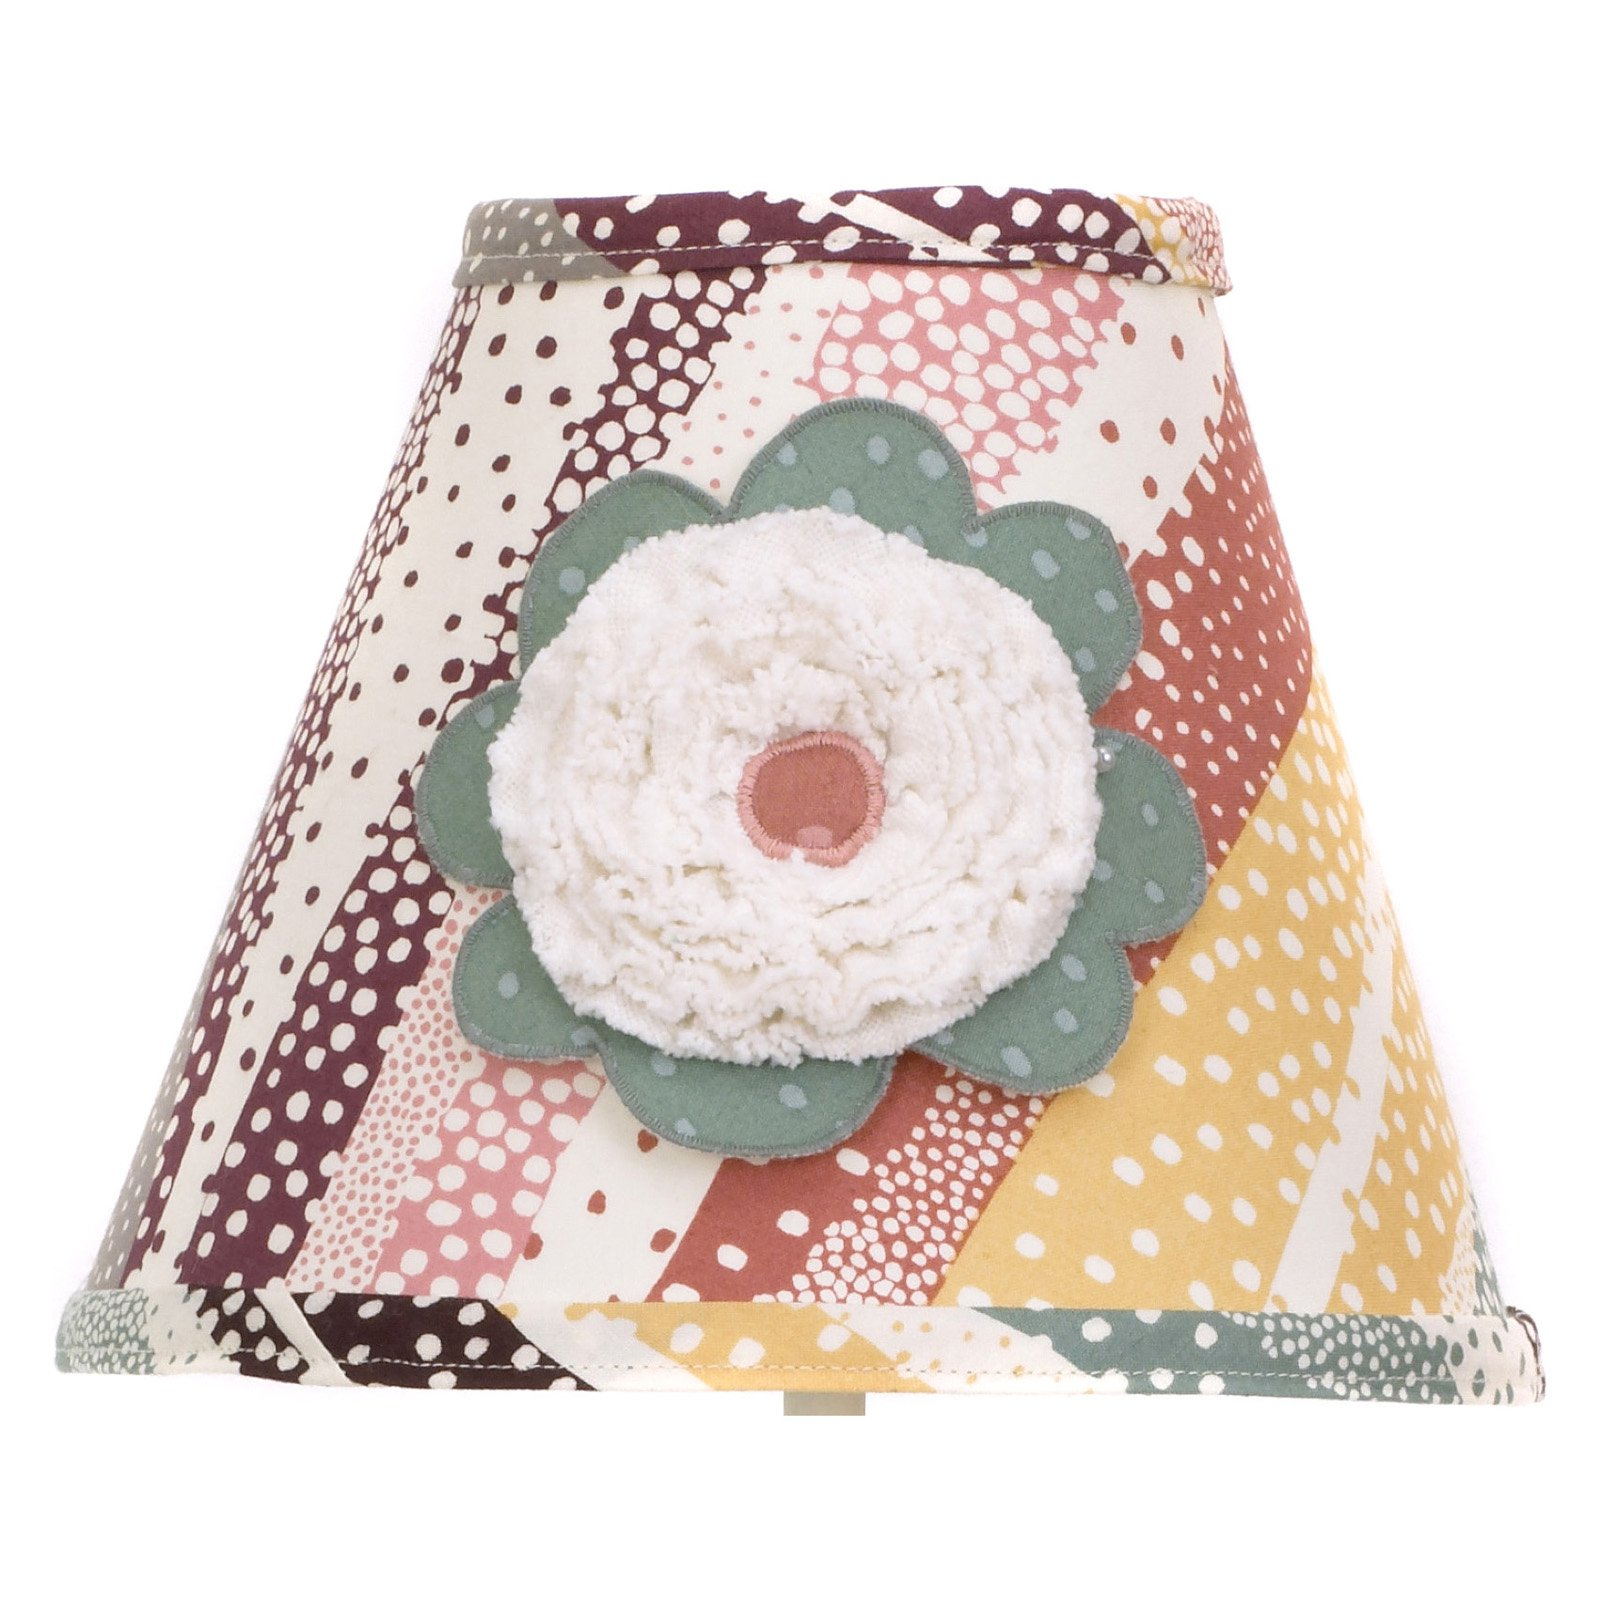 Cotton Tale Designs Penny Lane Shade by Cotton Tale Designs